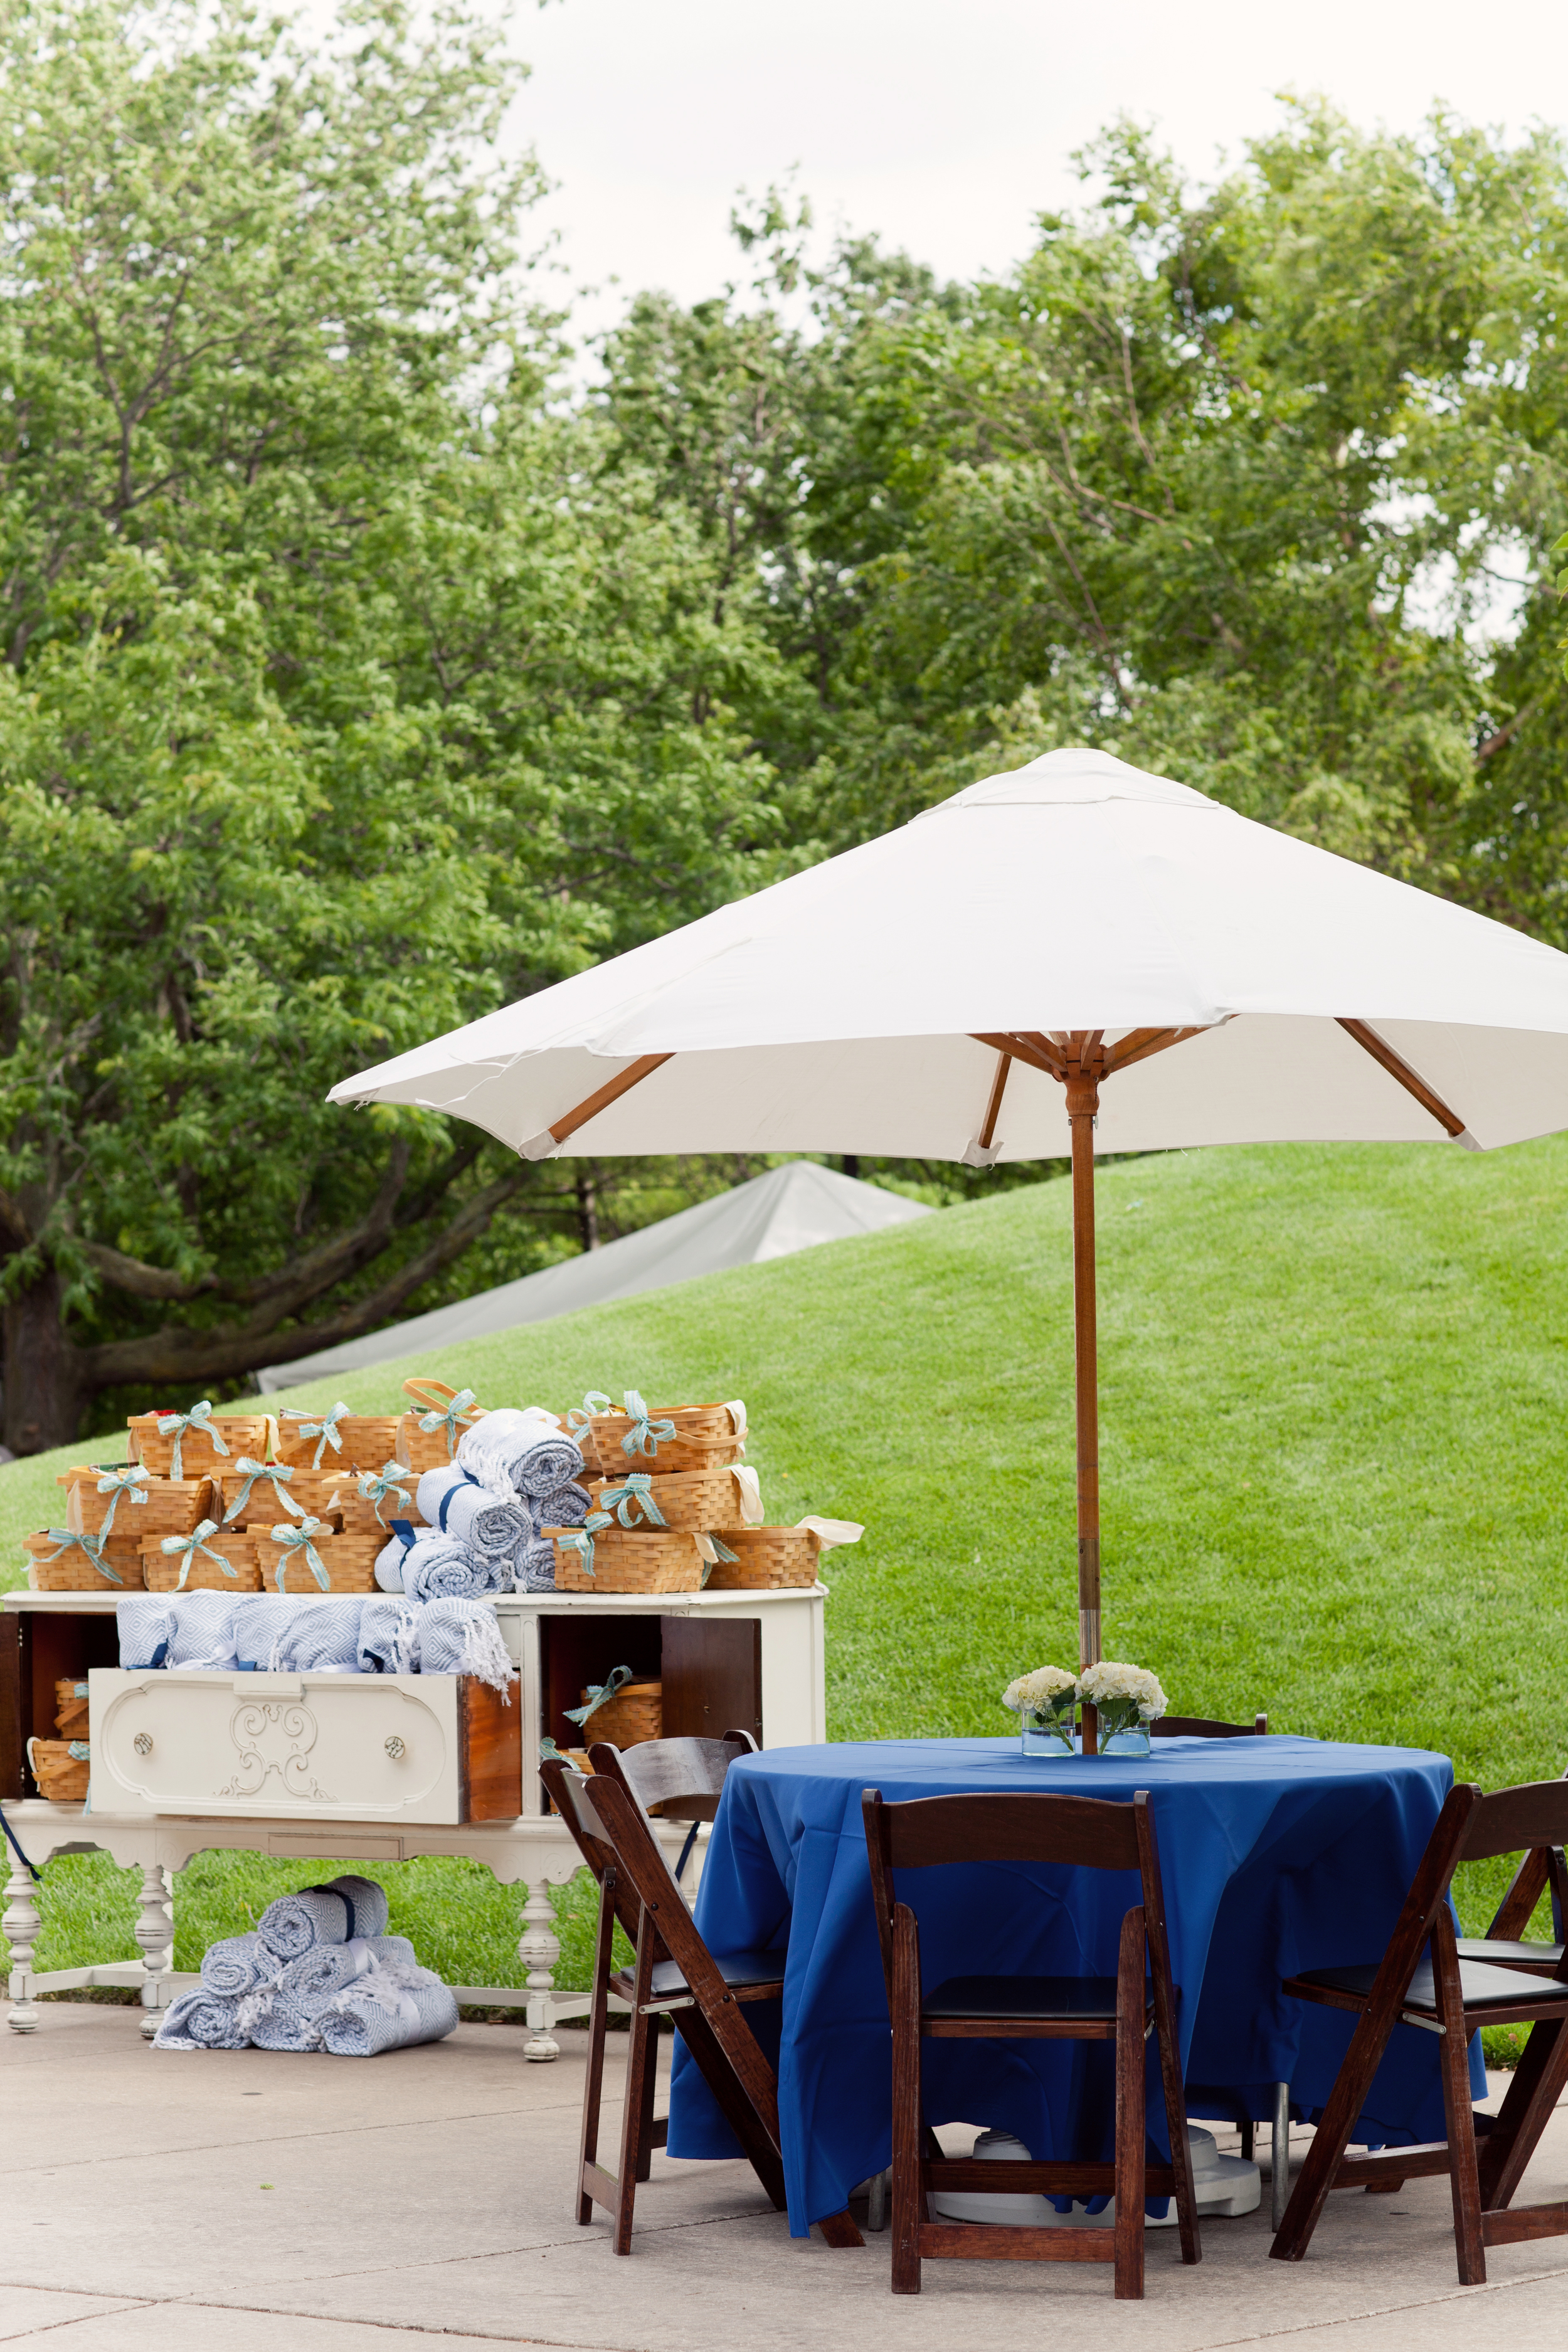 Grand Rapids, Michigan Park Event with Vintage Rental Furniture